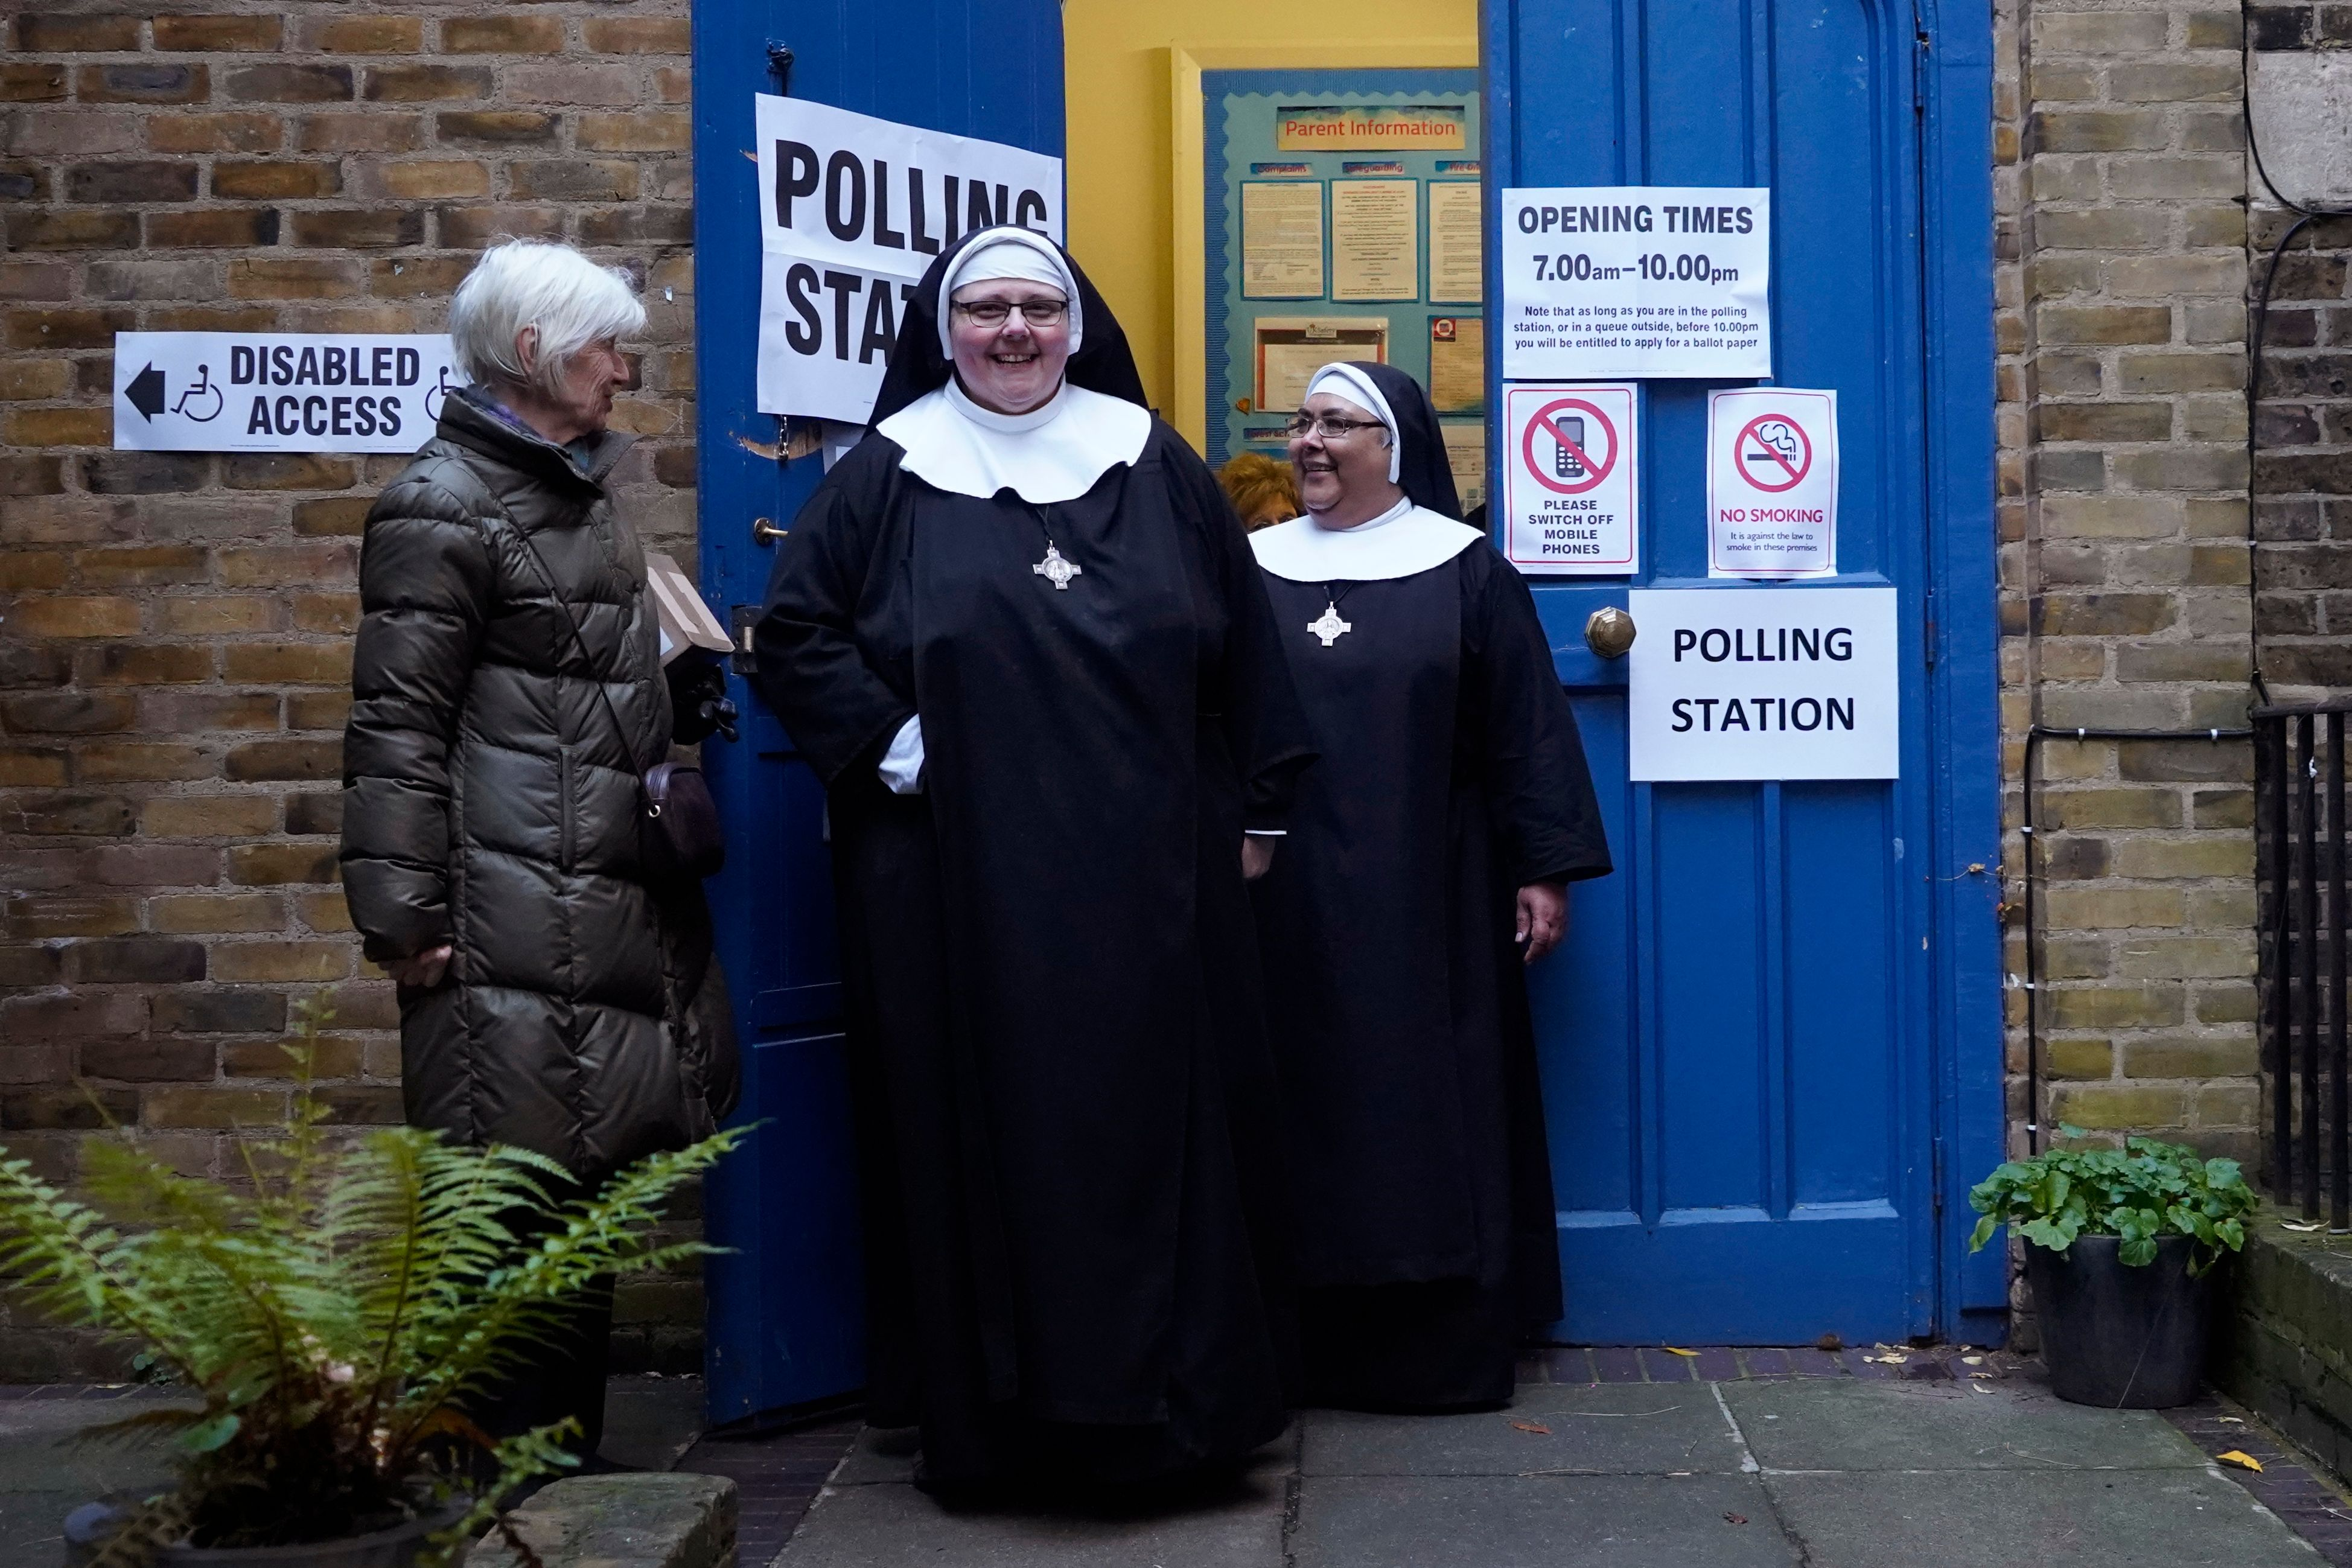 Nuns leave after voting at St John's parish hall polling station in London as Britain holds a general election on December 12, 2019 (Photo by Niklas HALLE'N / AFP) (Photo by NIKLAS HALLE'N/AFP via Getty Images)